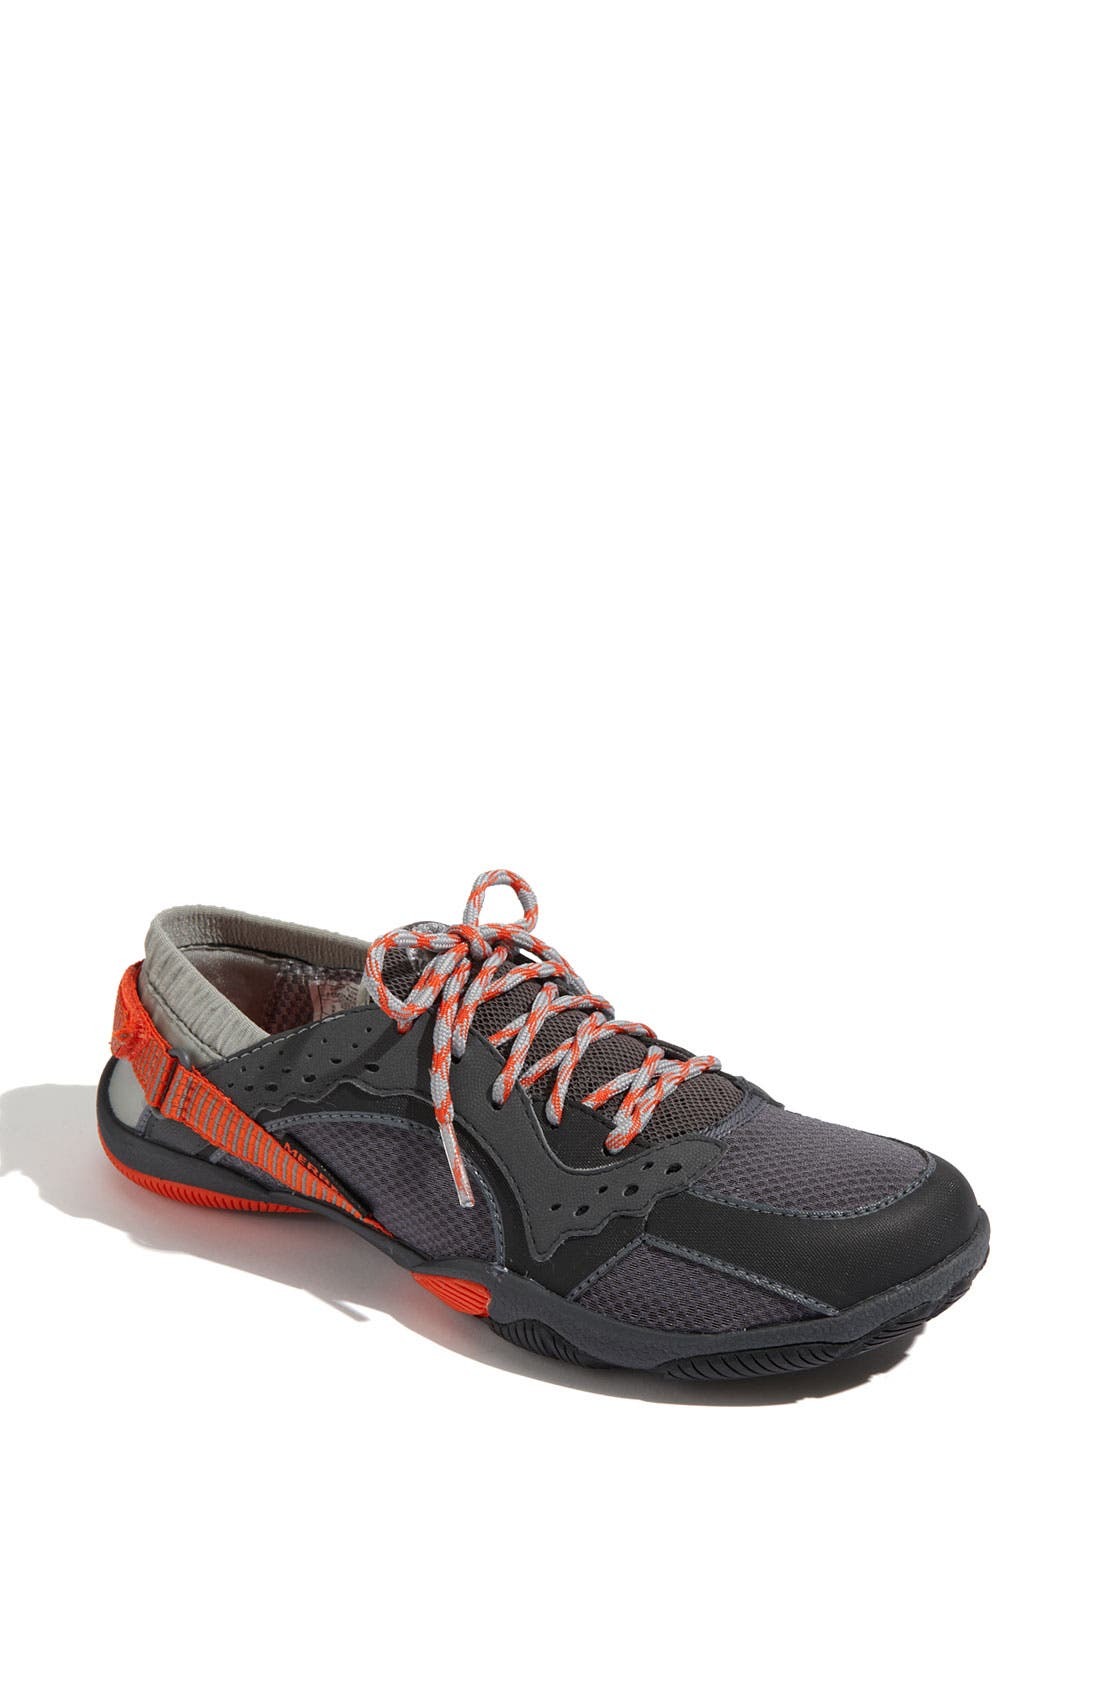 Alternate Image 1 Selected - Merrell 'Swift Glove' Walking Shoe (Women)